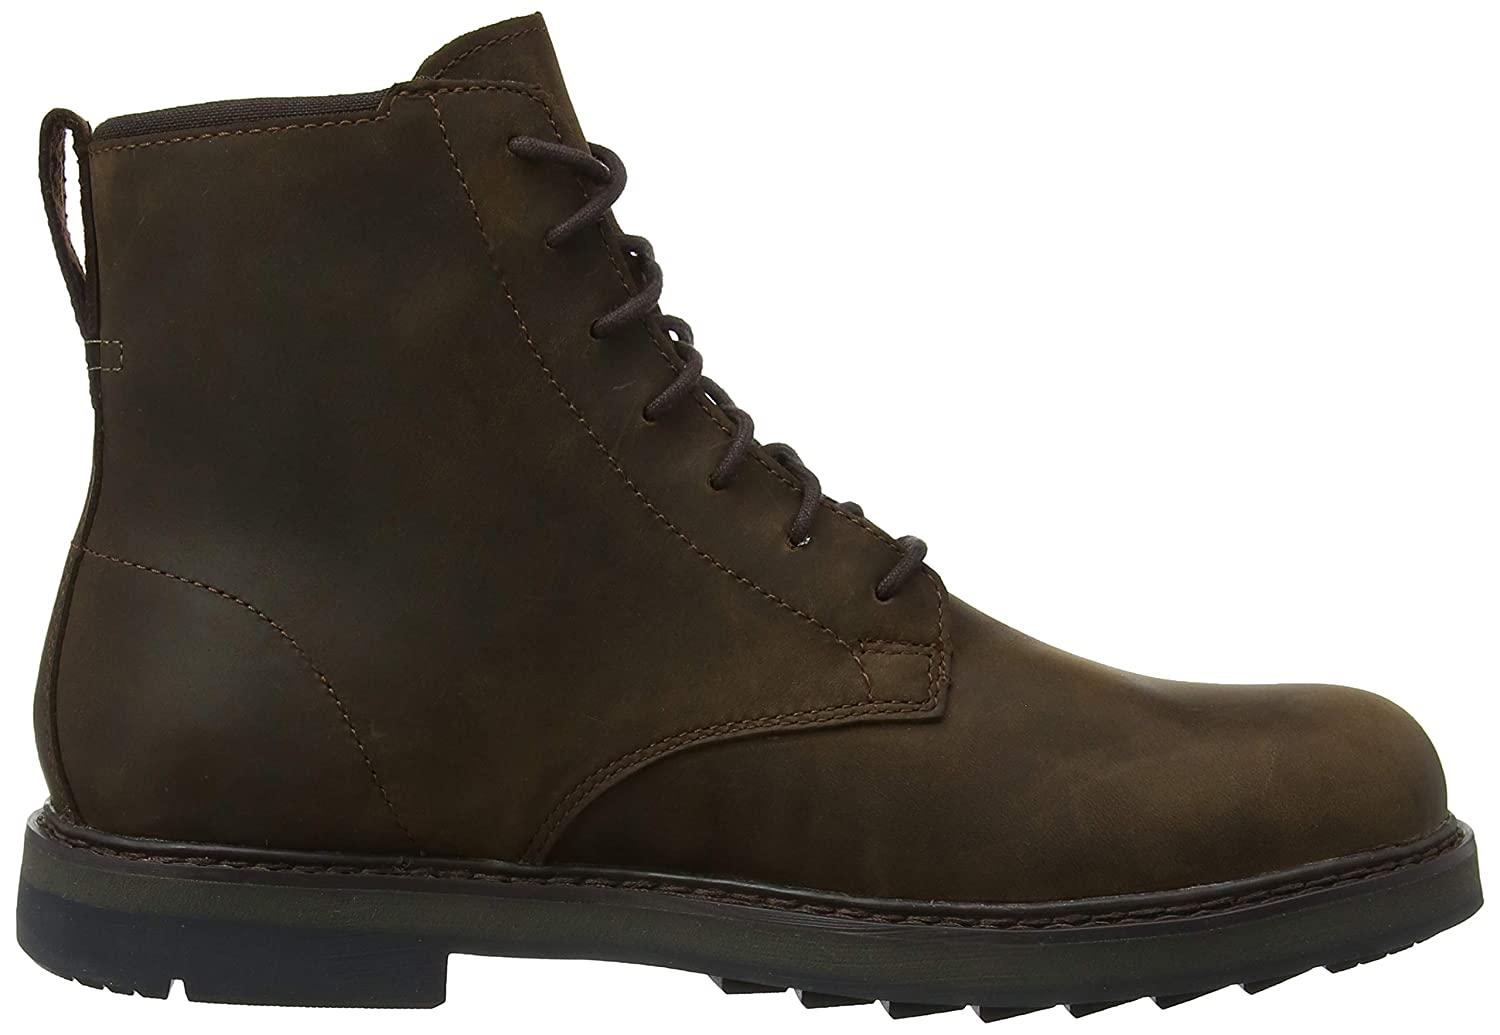 Timberland Squall Canyon, Bottes & Bottines Classiques Homme